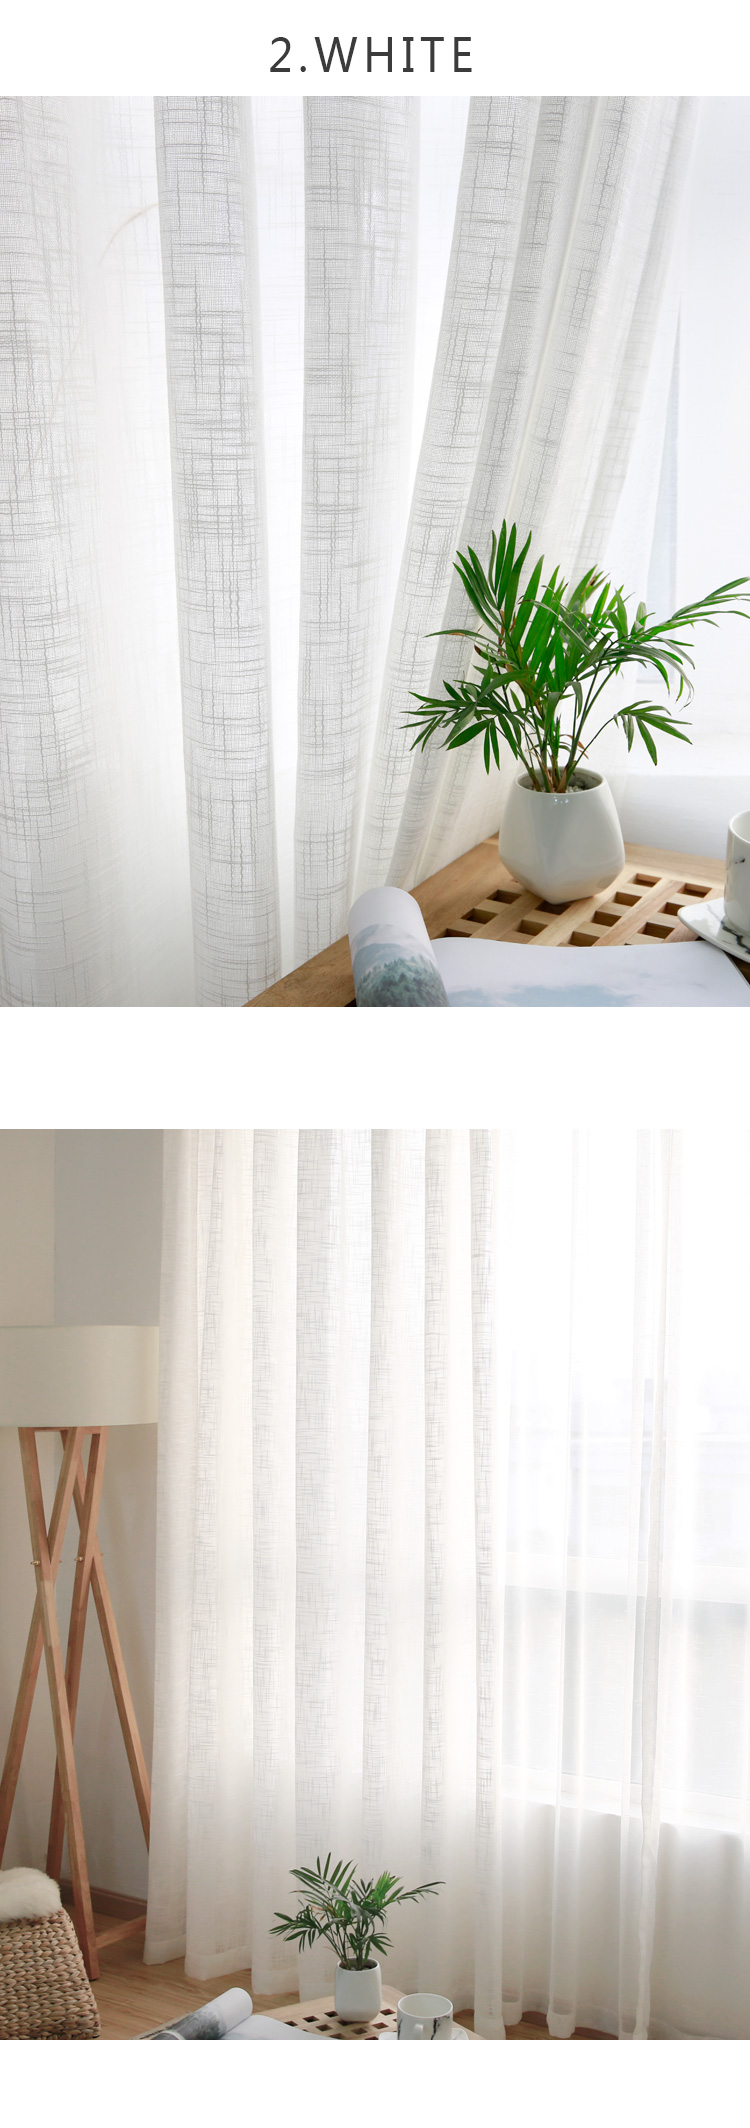 CITYINCITY Tulle  American Curtains for Living room Soft White Voile  solid Rural Tulle Curtain for bedroom ready made curtain08